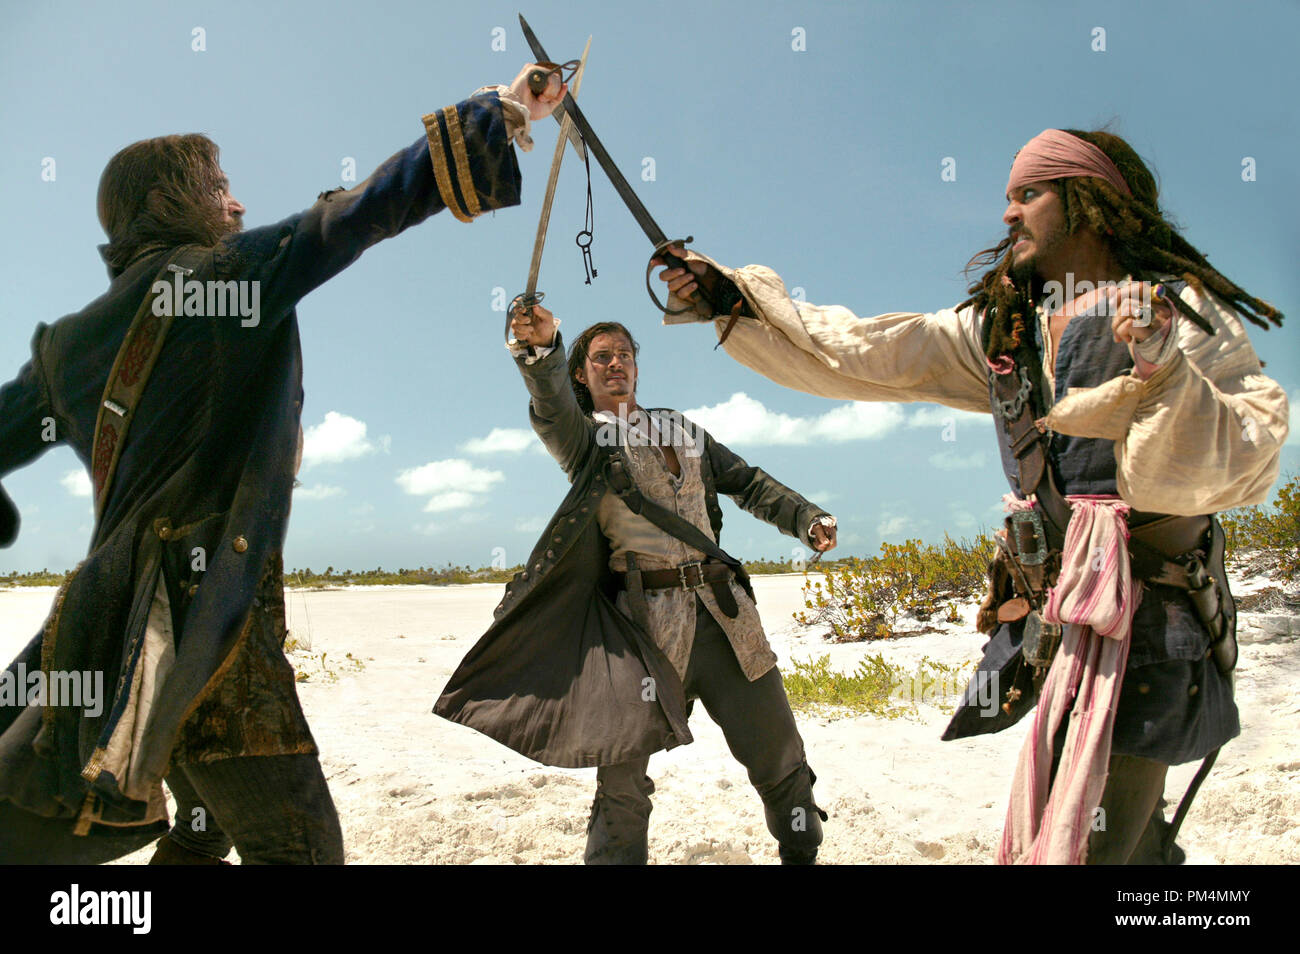 Walt Disney Pictures Presents 'Pirates of the Caribbean: Dead Man's Chest'  Jack Davenport, Johnny Depp, Orlando Bloom - Stock Image